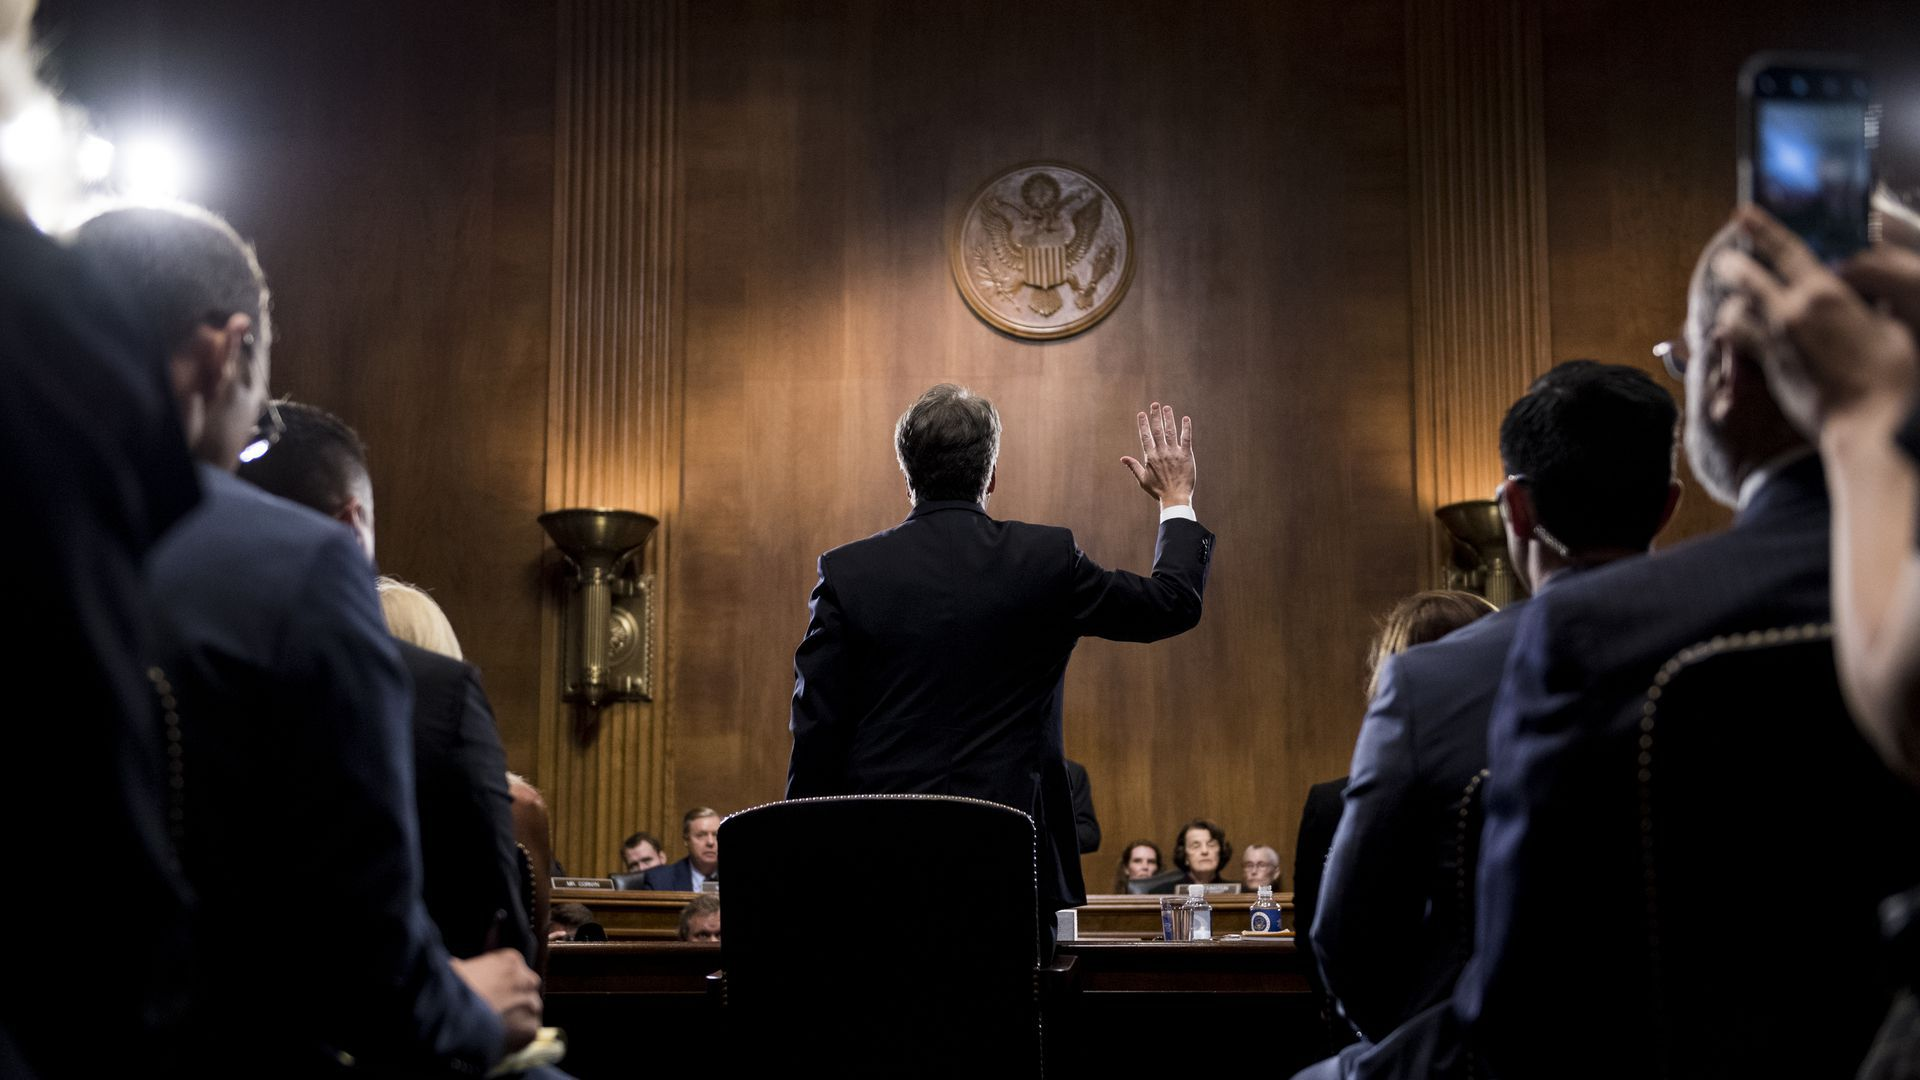 Brett Kavanaugh testifies before the senate judiciary committee